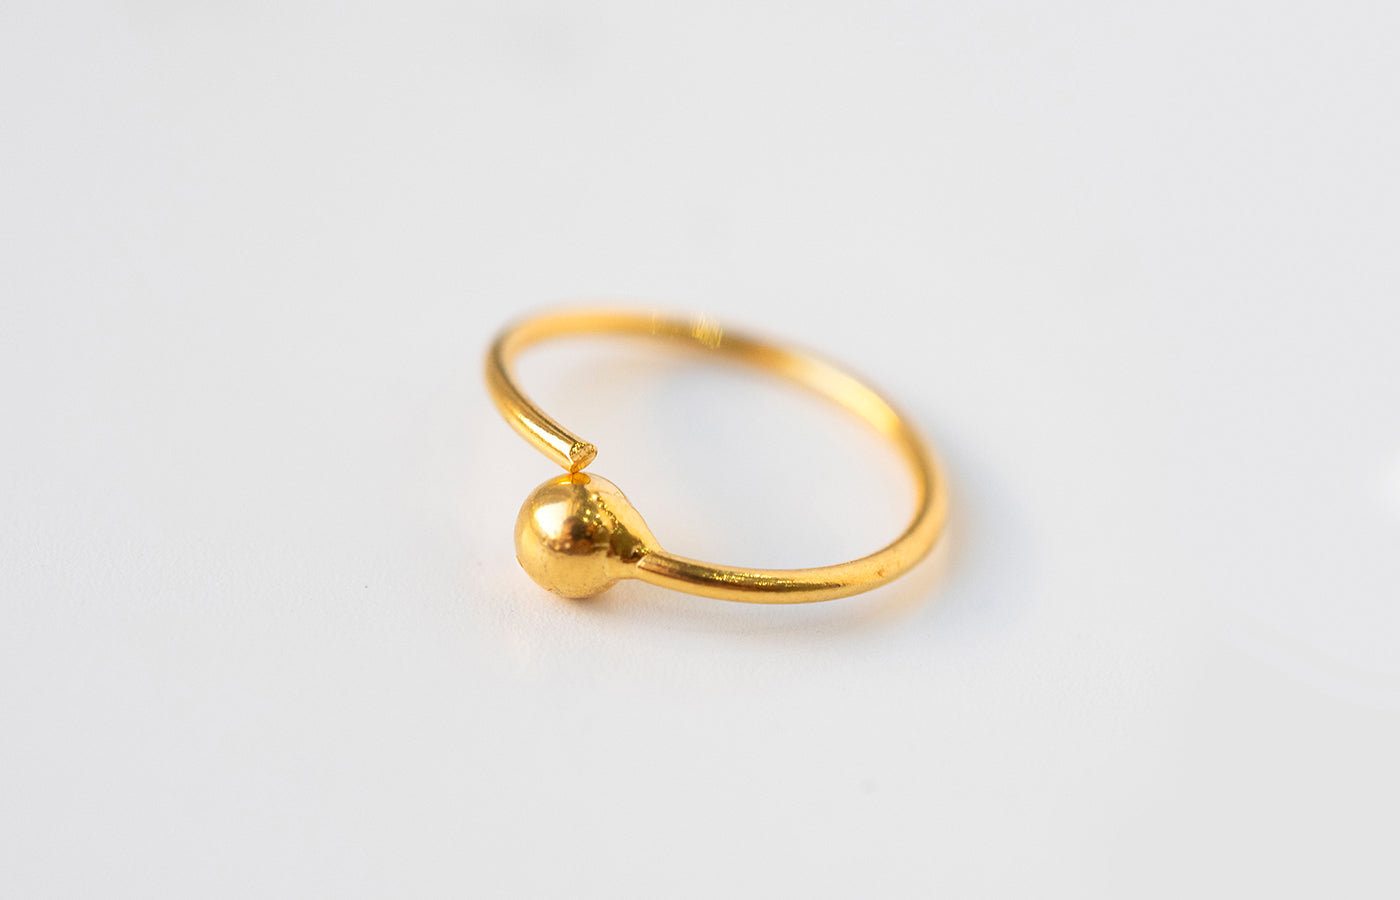 18ct Yellow Gold Nose Ring With Bead Nr 7578 Minar Jewellers